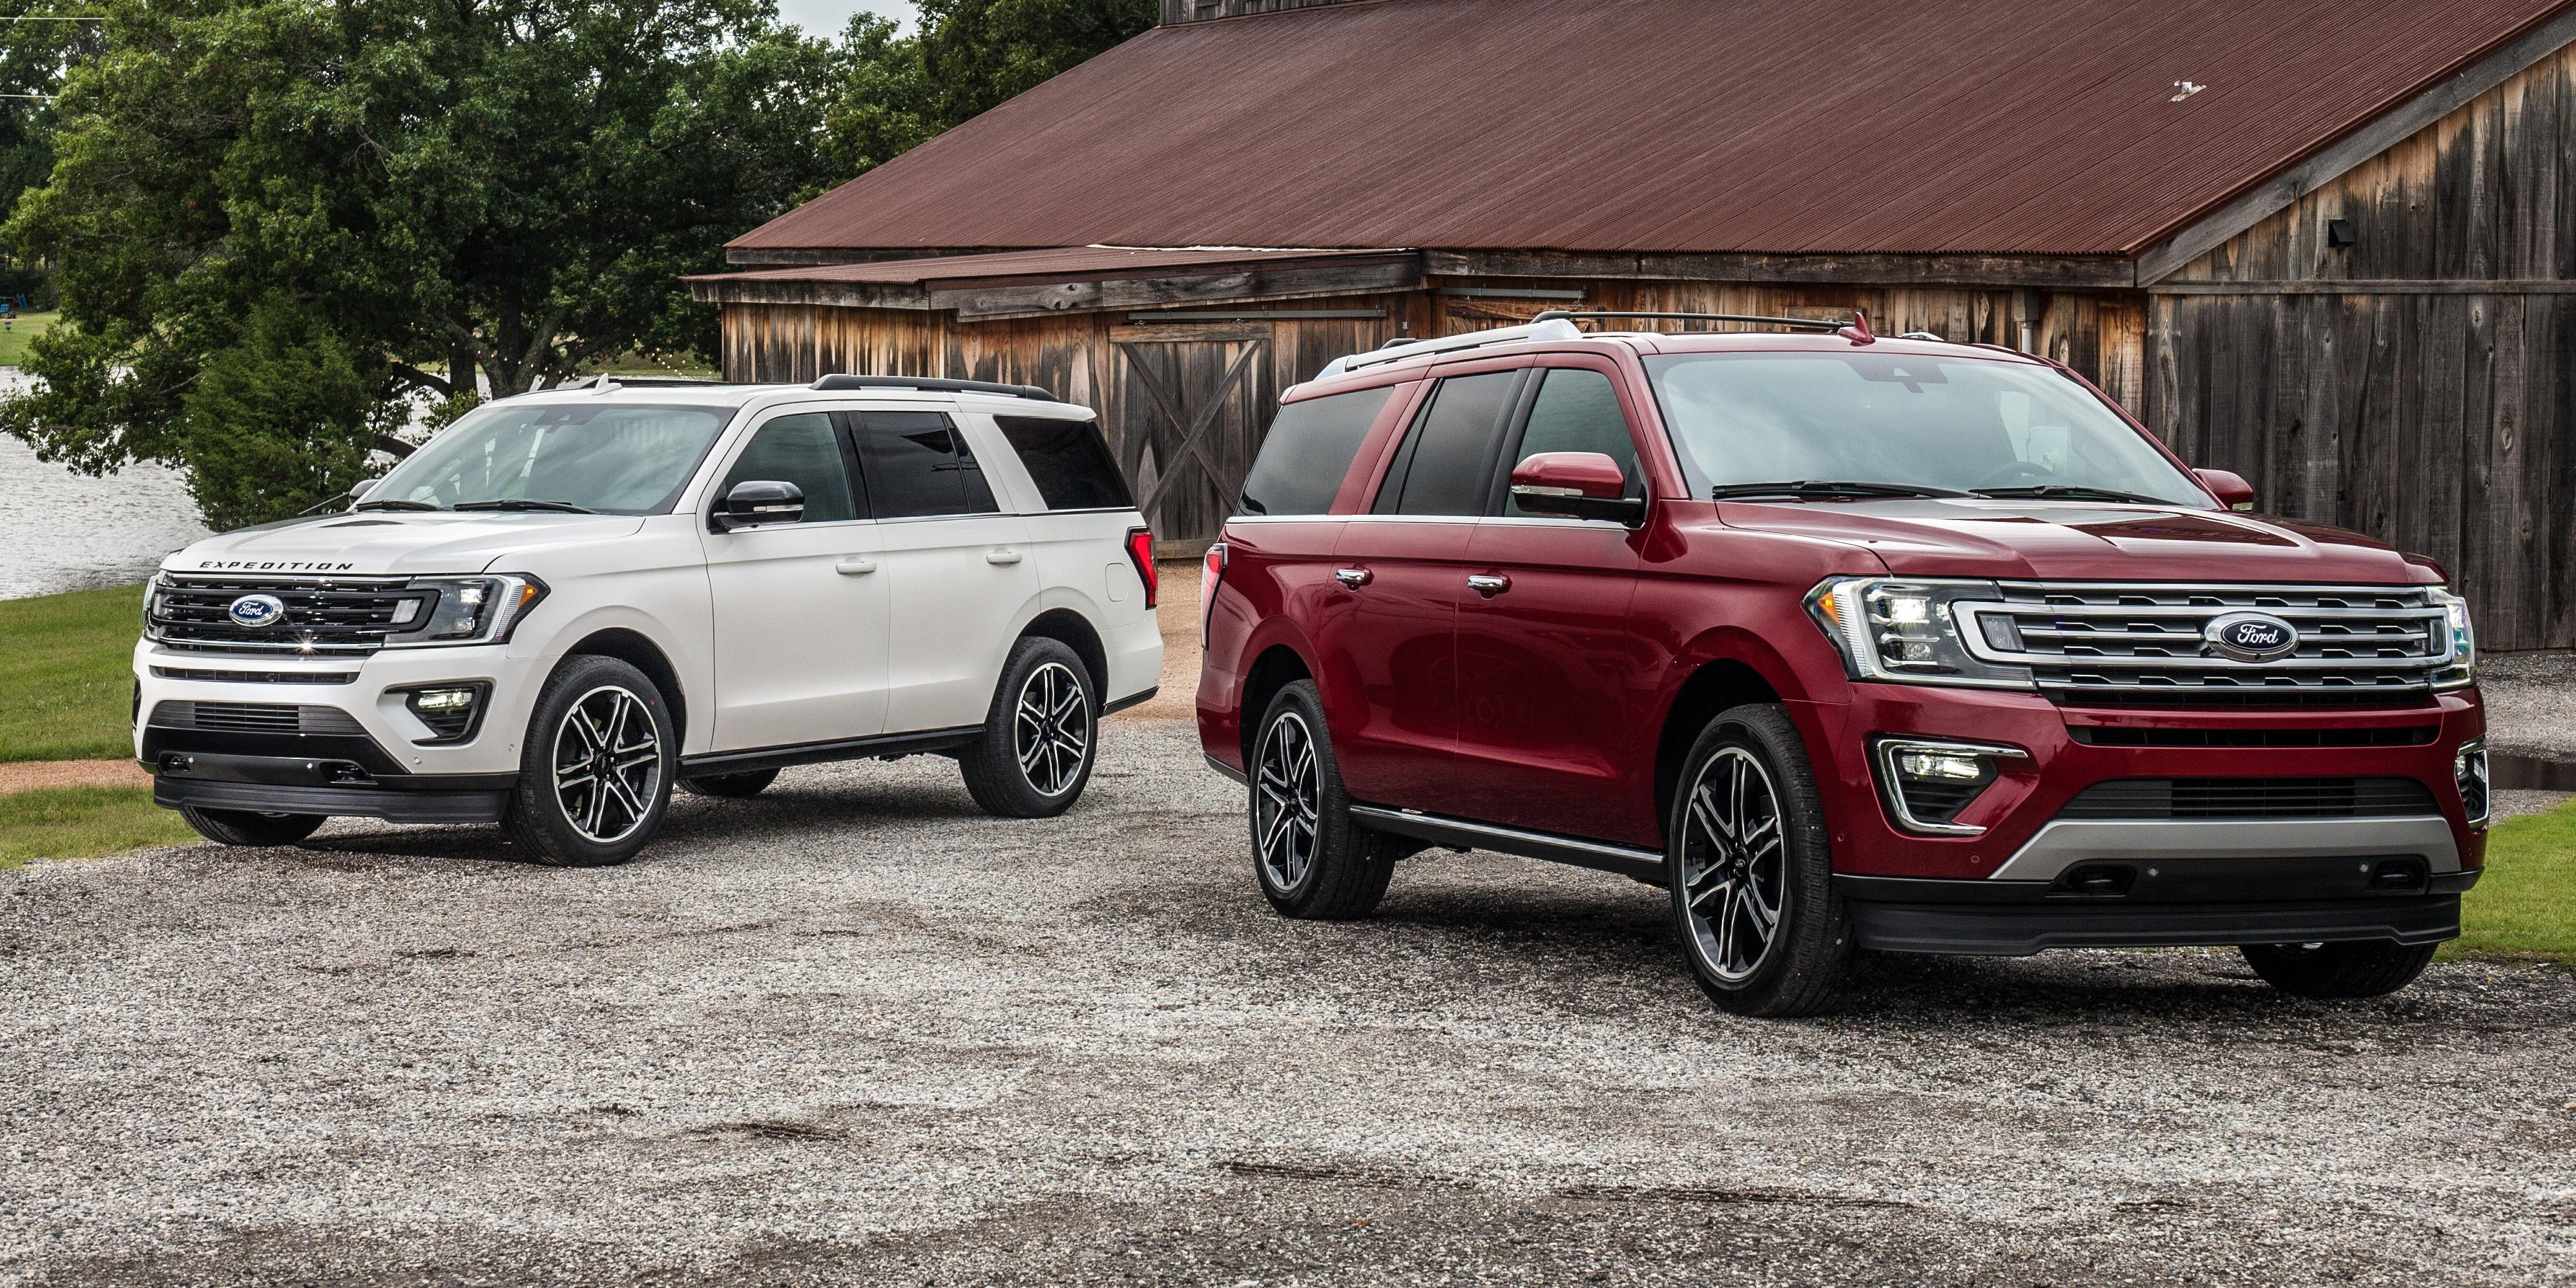 2019-ford-expedition-texas-and-stealth-editions-2